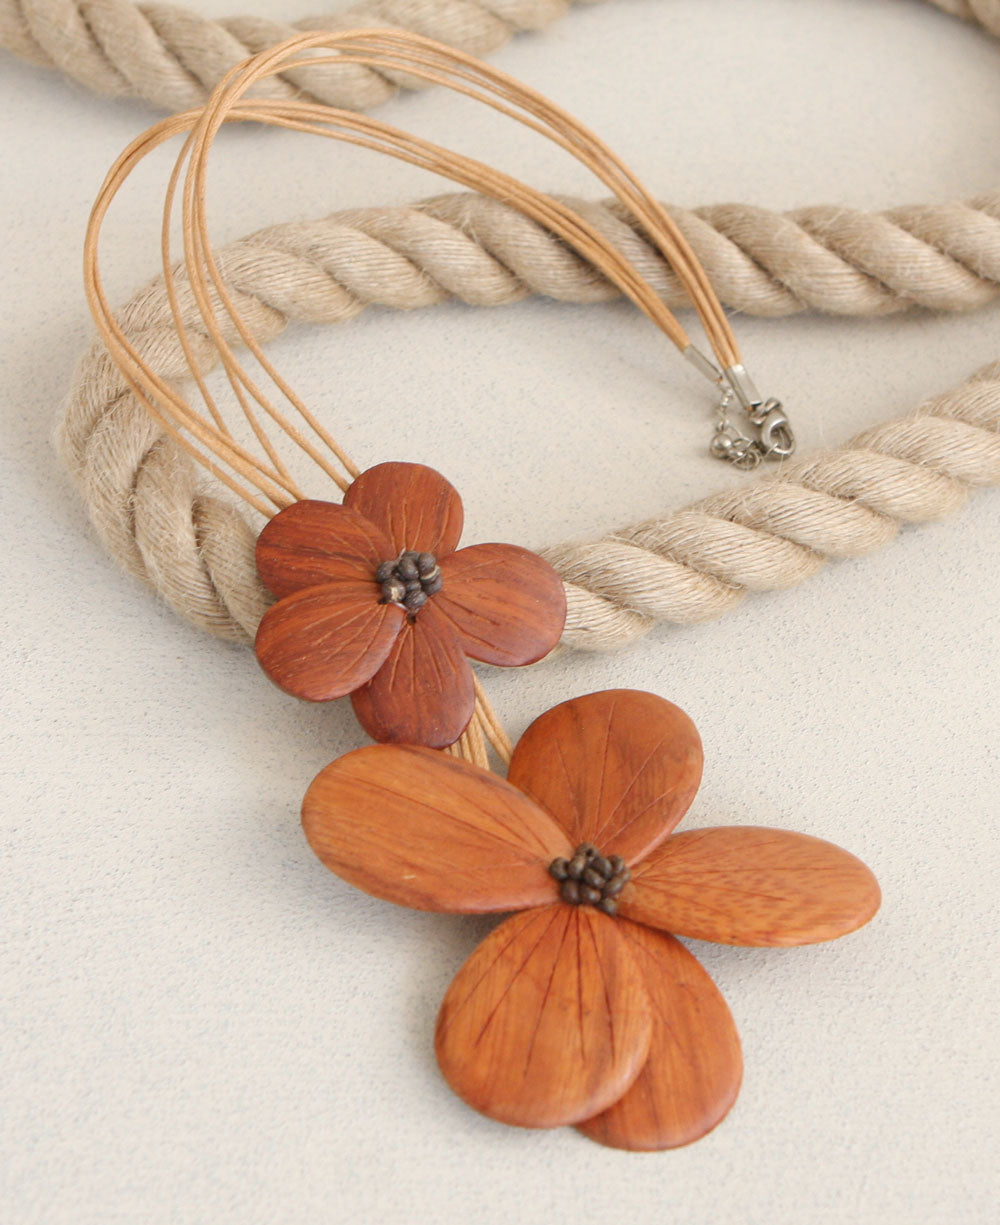 Bayong wood hibiscus flower necklace philippines cultural elements bayong wood hibiscus flower necklace philippines izmirmasajfo